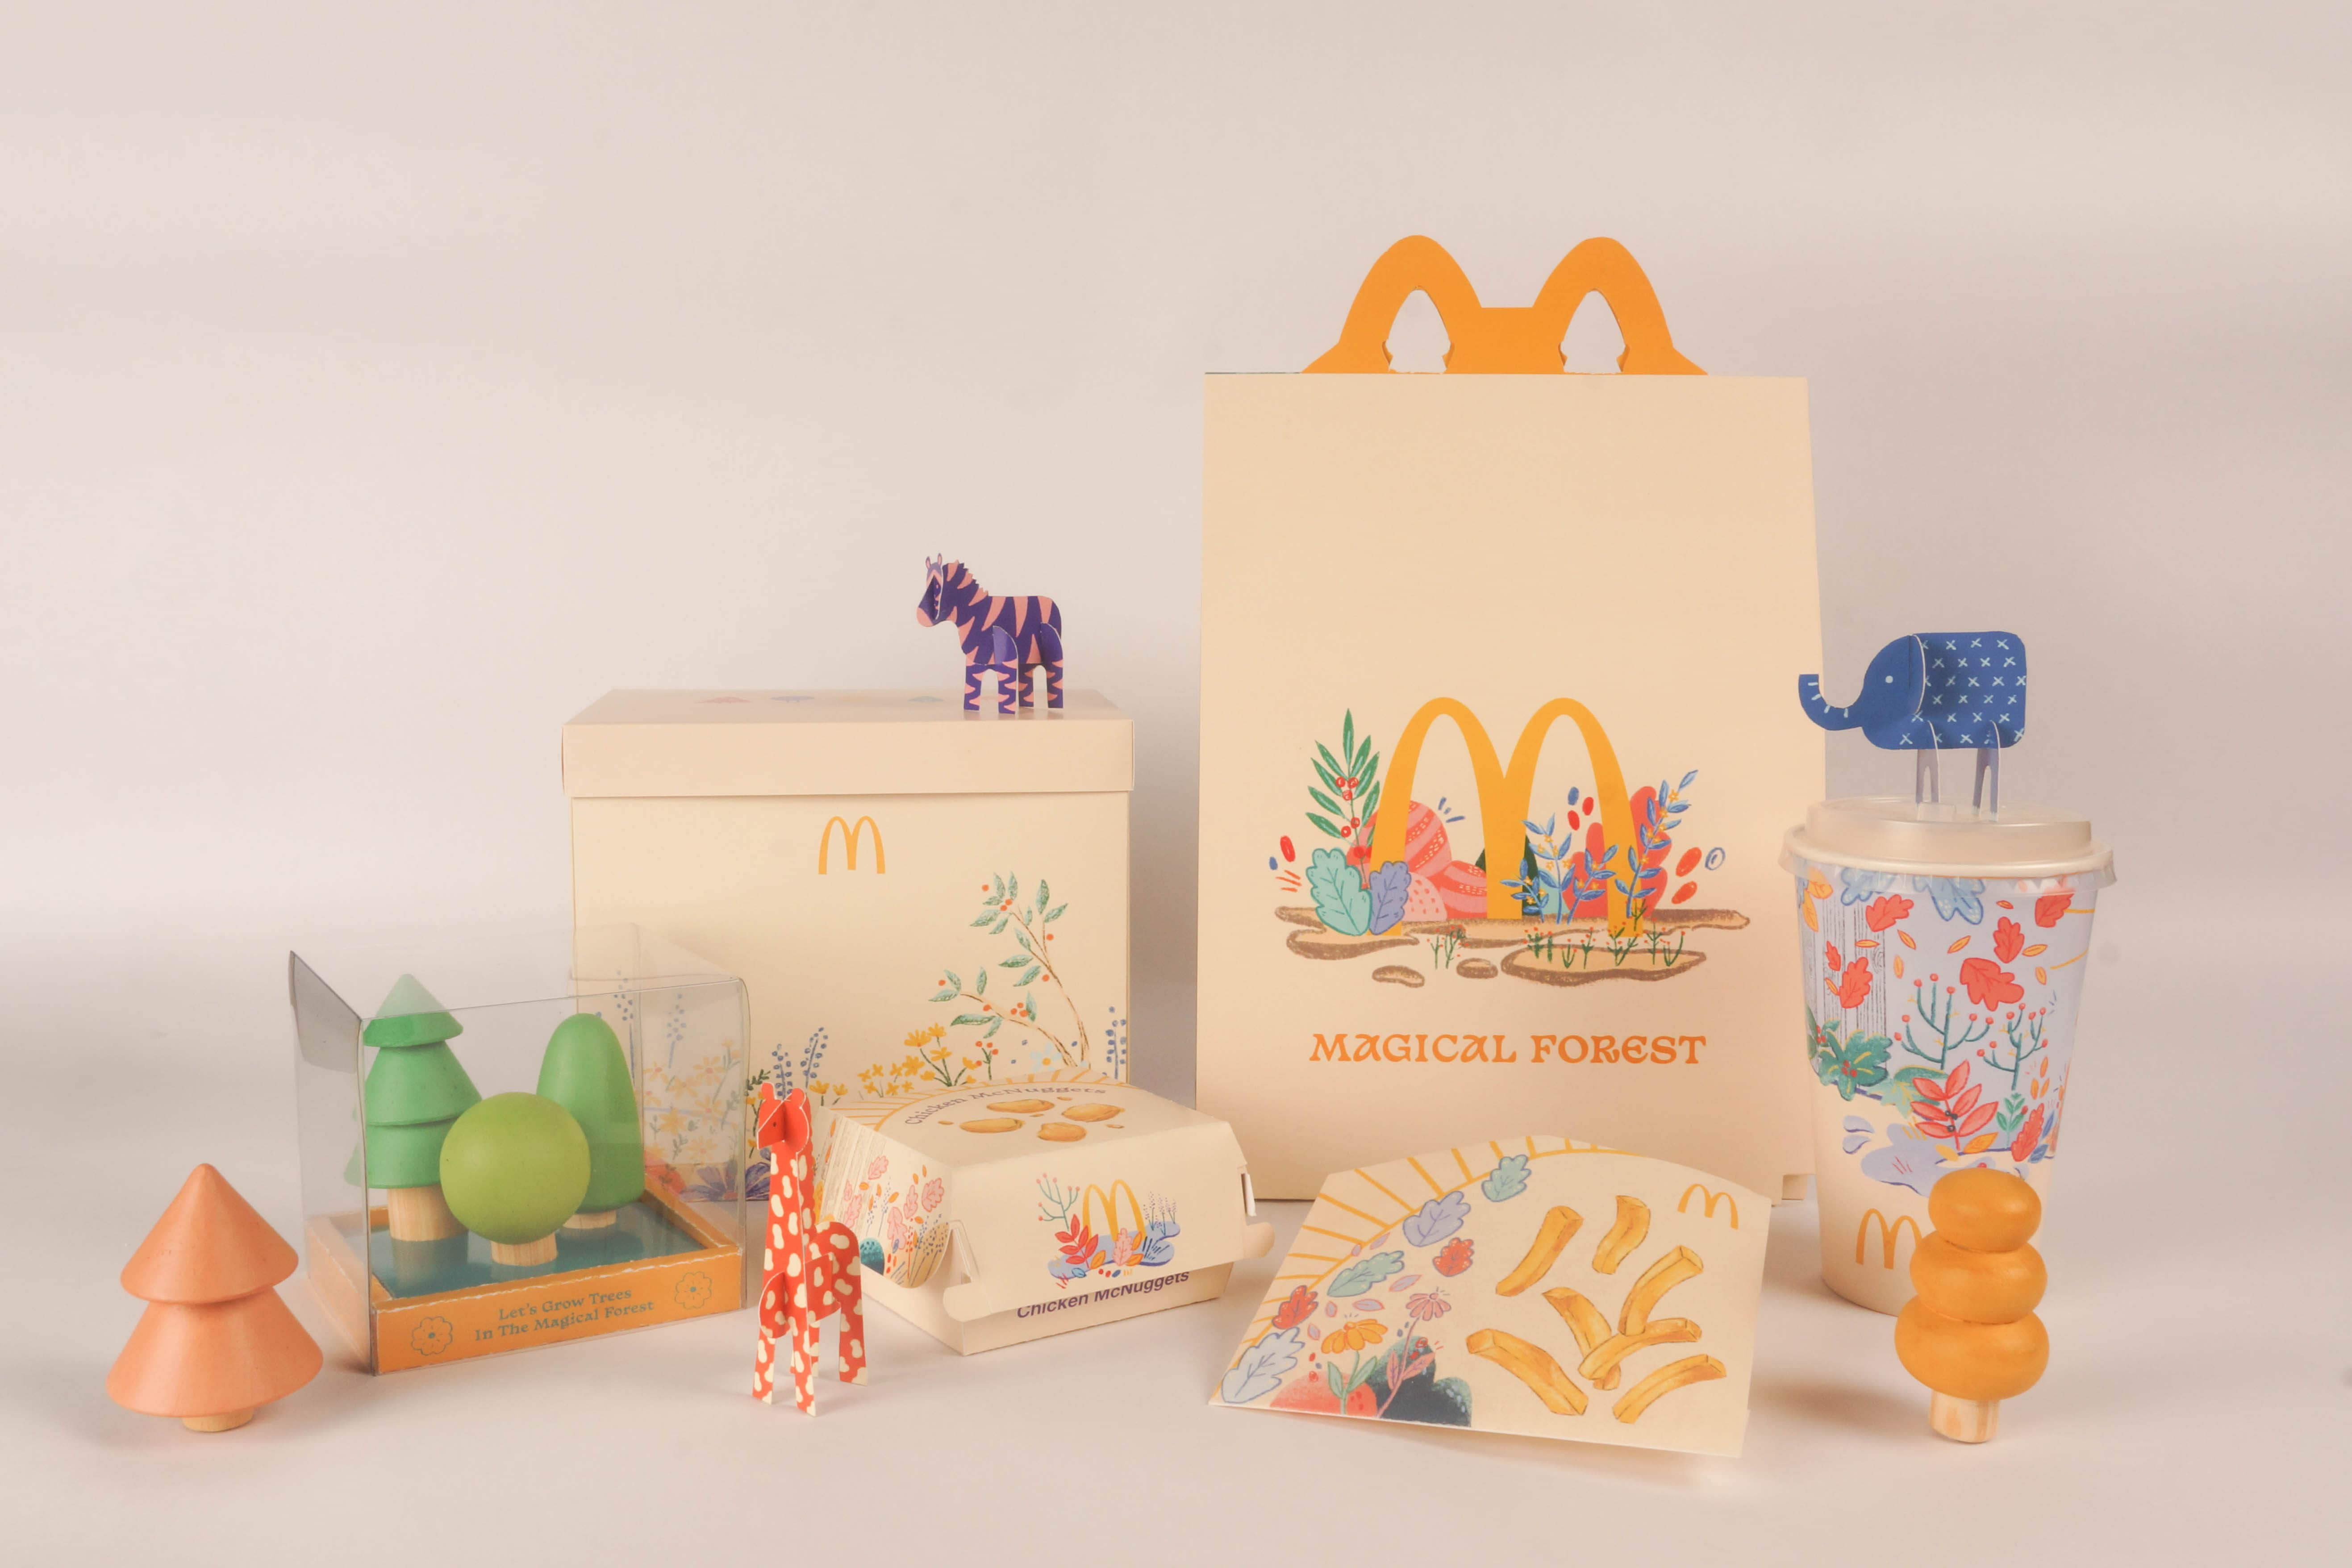 Magical Forest McDonalds Happier Meal Created by Student Regina Lim